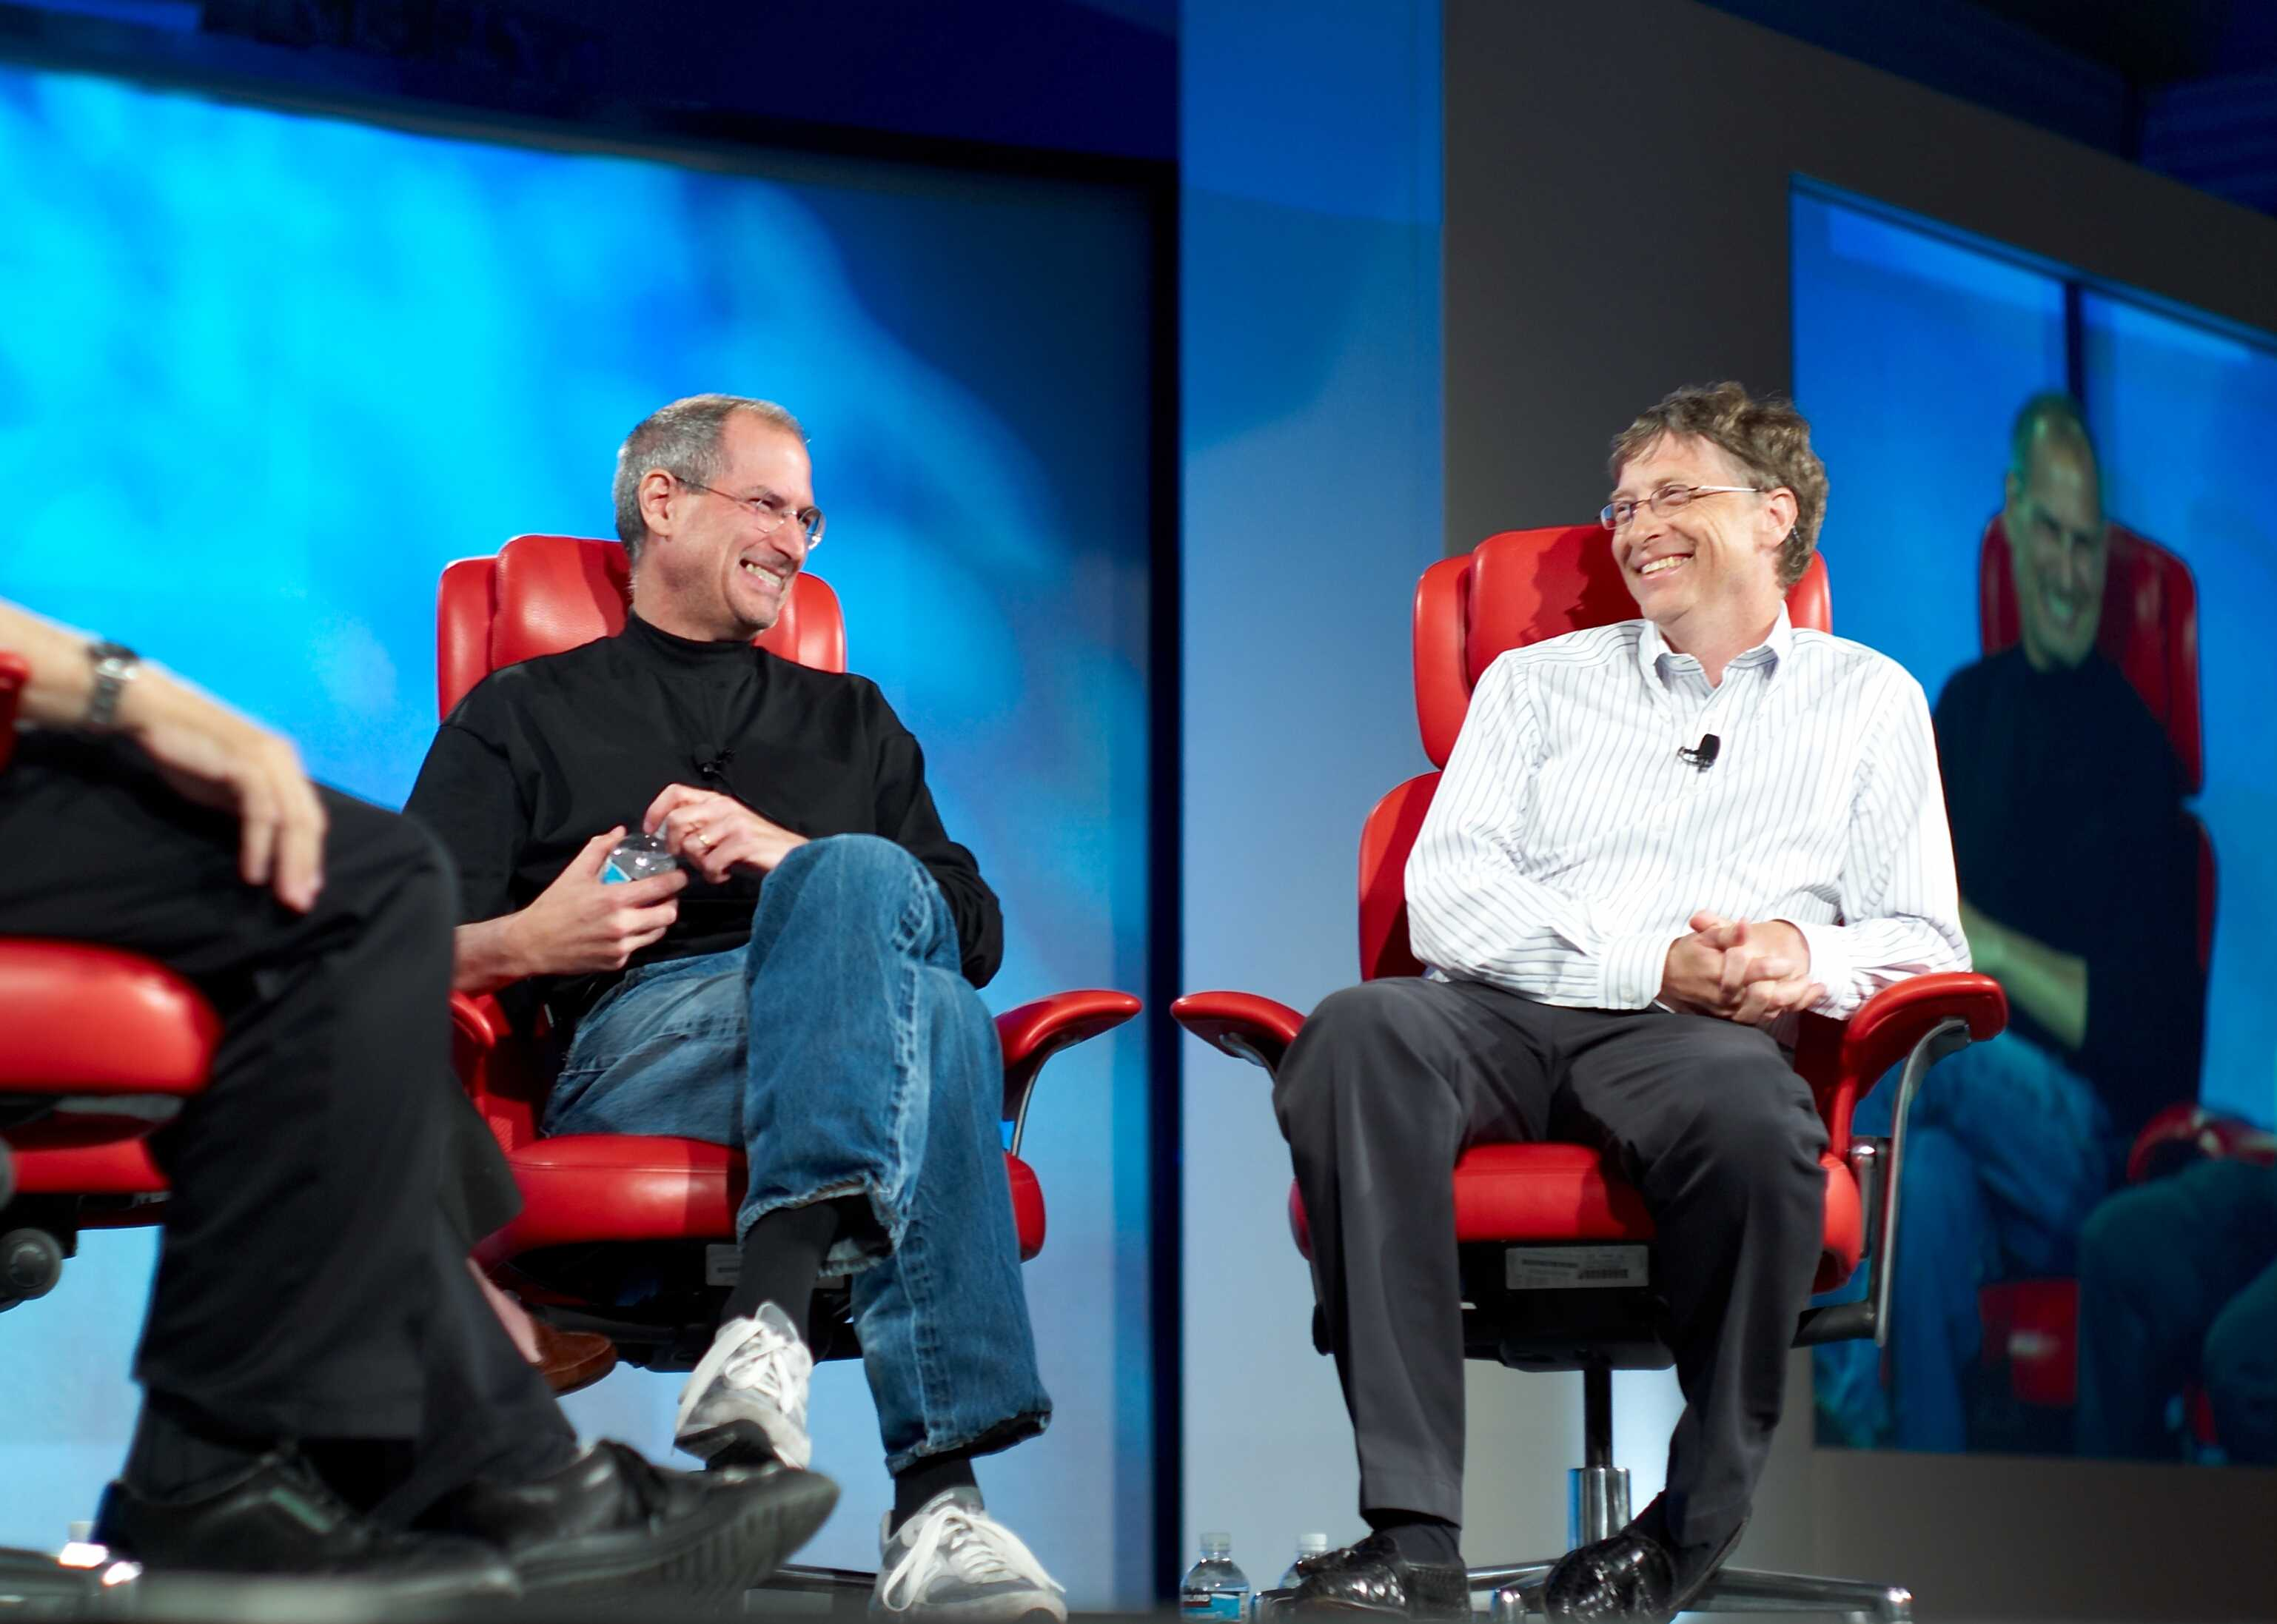 Steve Jobs and Bill Gates, rivals and friends.